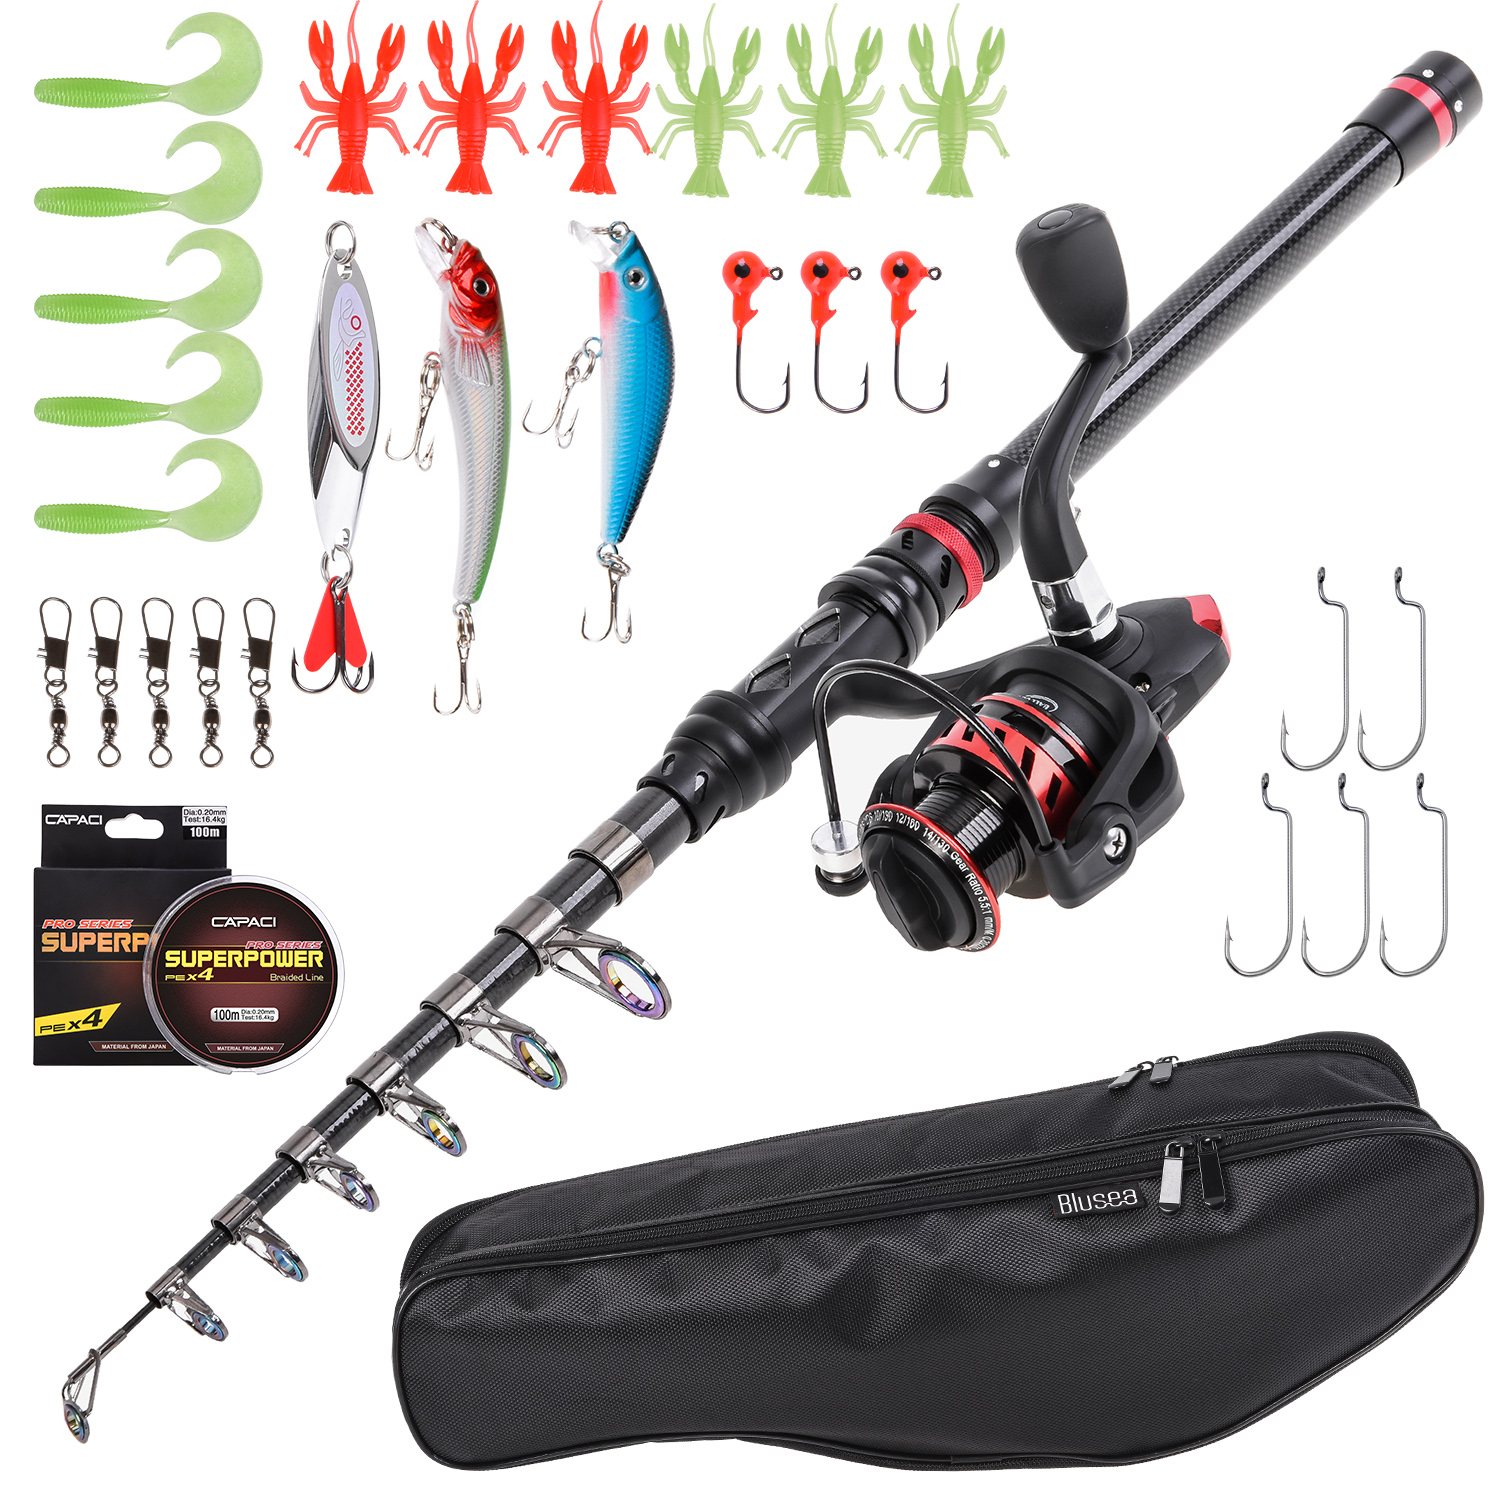 Telescopic Fishing Rod and Reel Spining Pole Case Combo Saltwater Freshwater